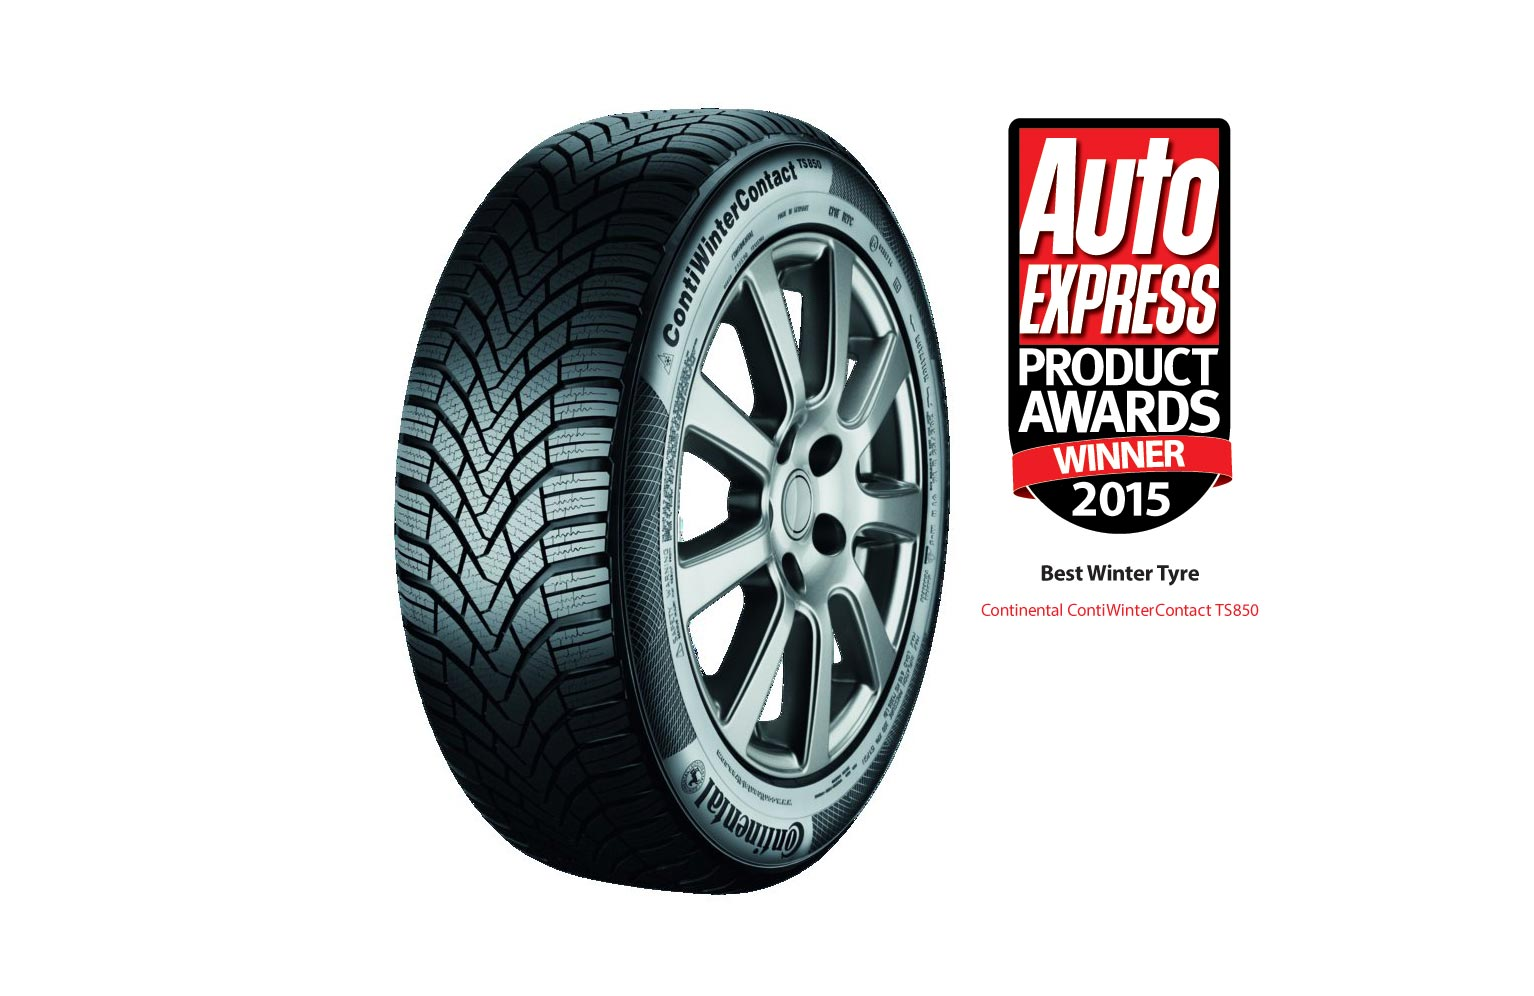 ContiWinterContact TS850 is Auto Express 'Best Winter Tyre'